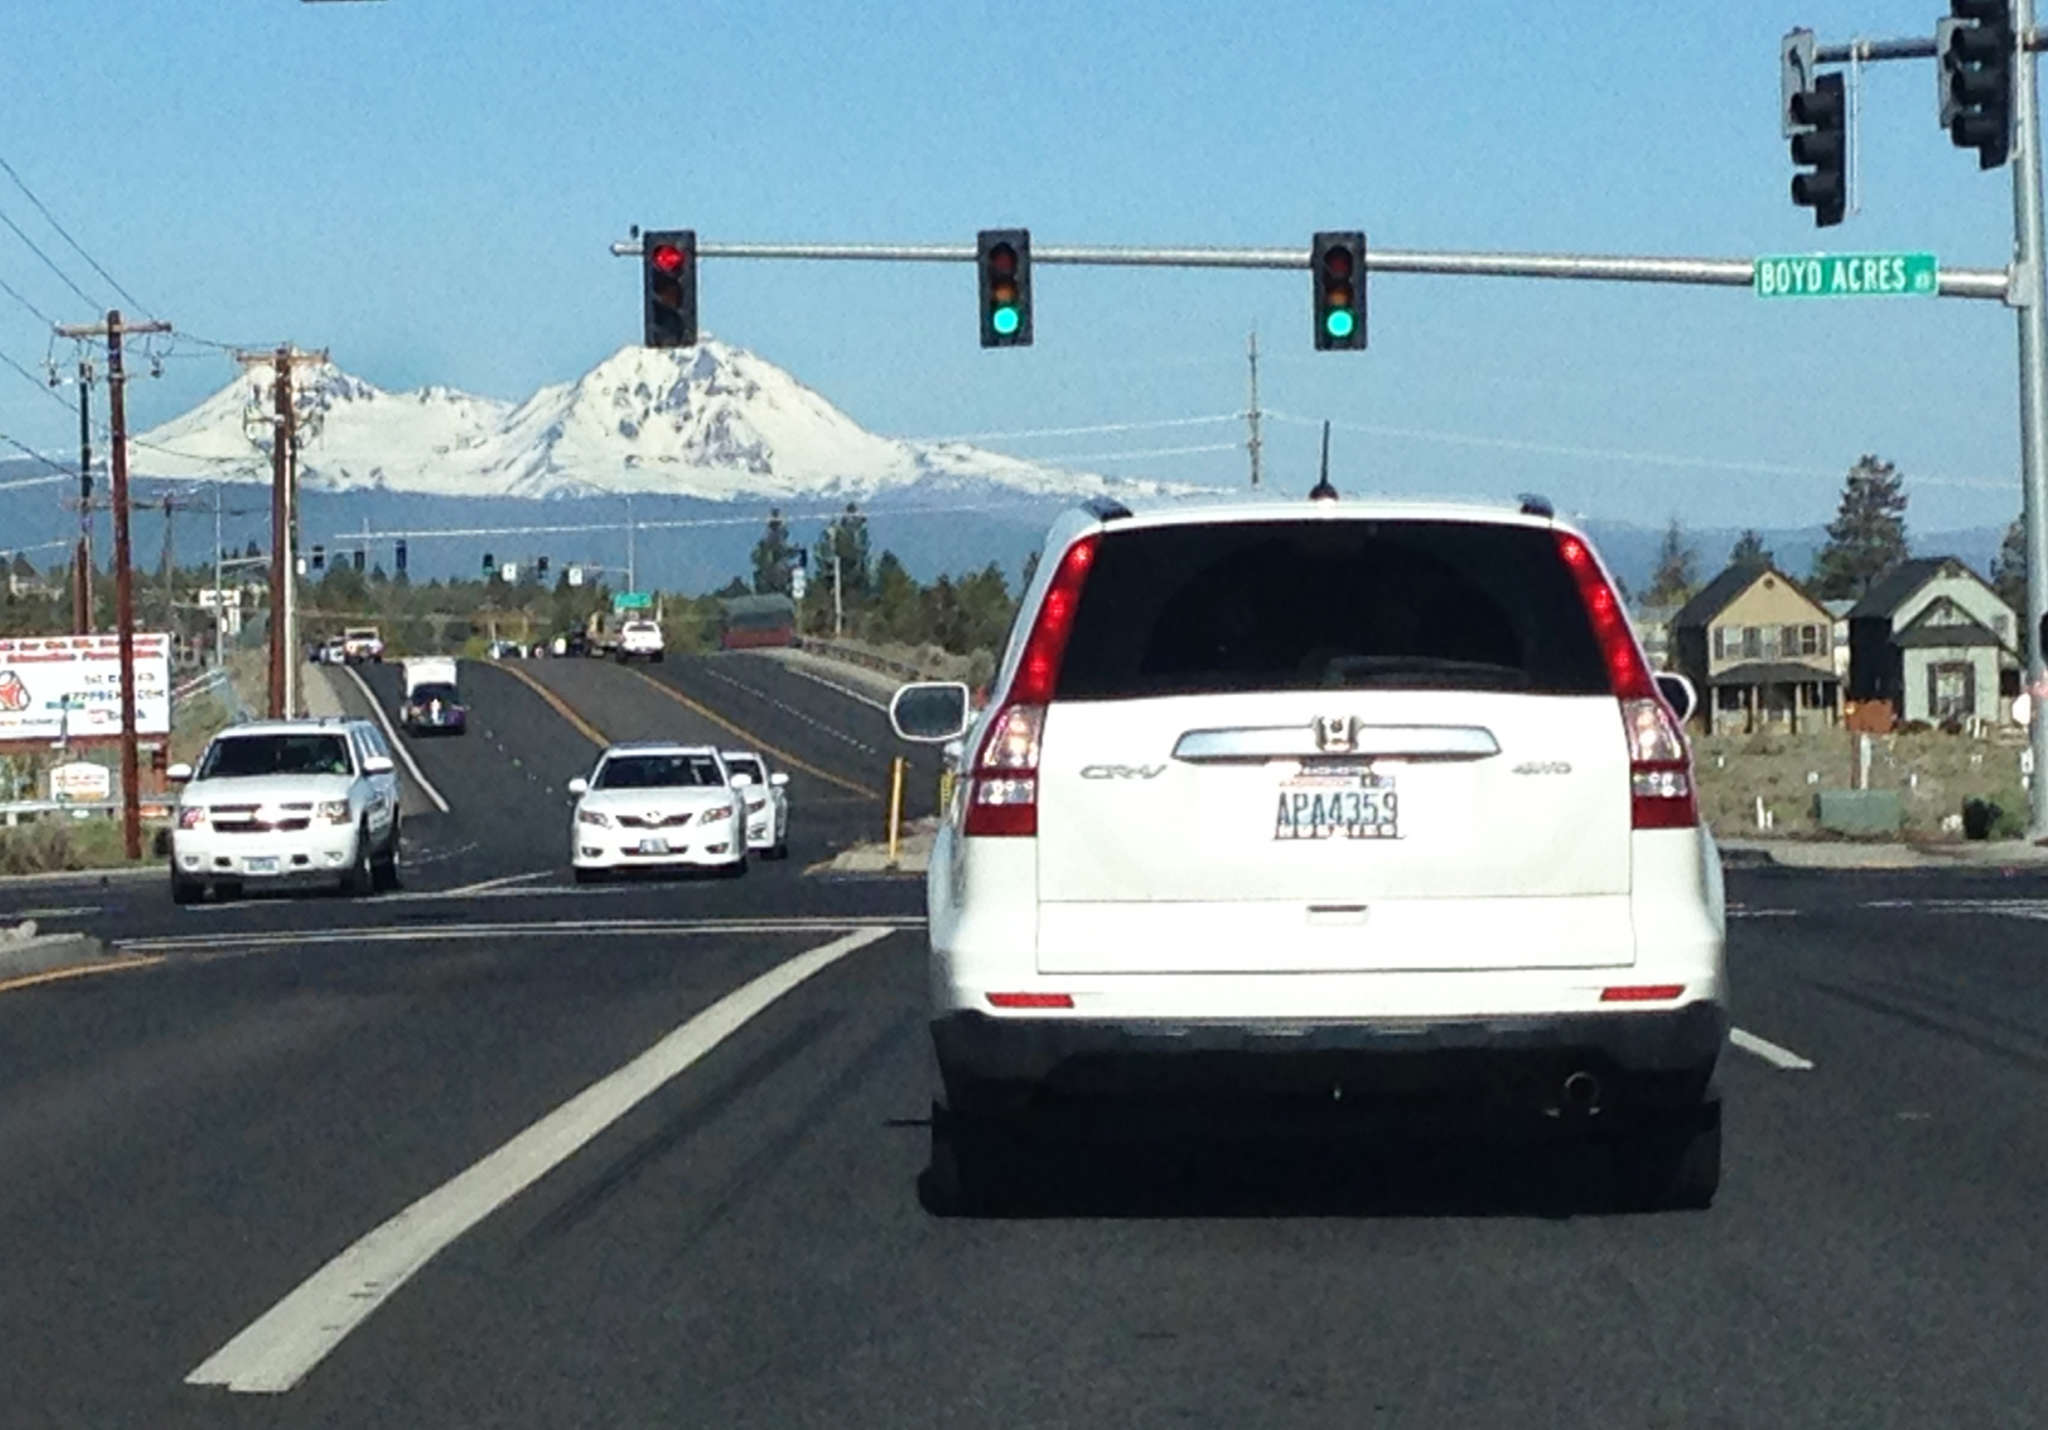 The view from one of the stoplights on the northeast end of Bend. Not too shabby, eh?